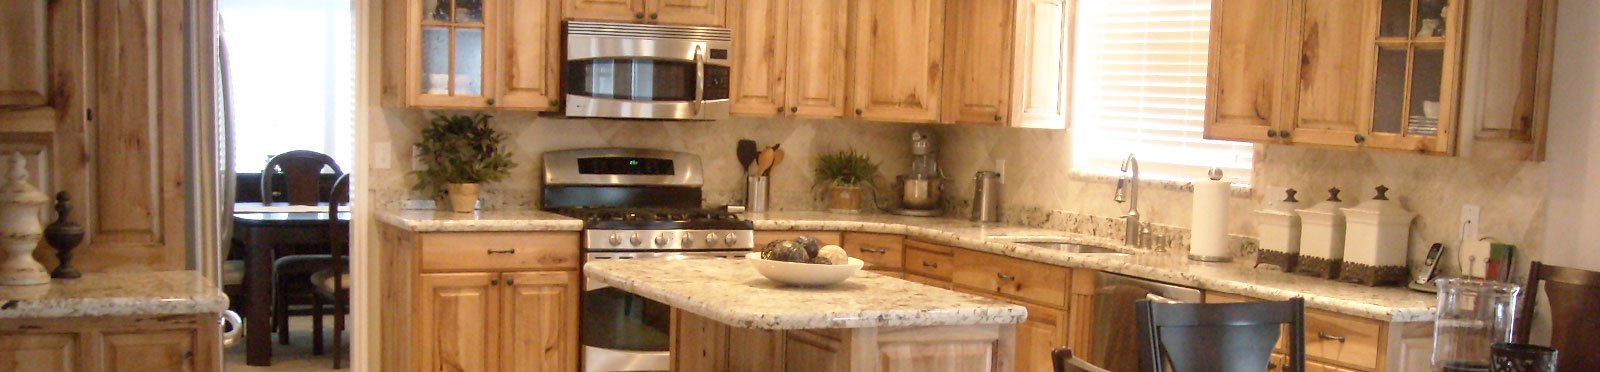 Cincinnati, Ohio Kitchen Remodeling And Bathroom Remodeling